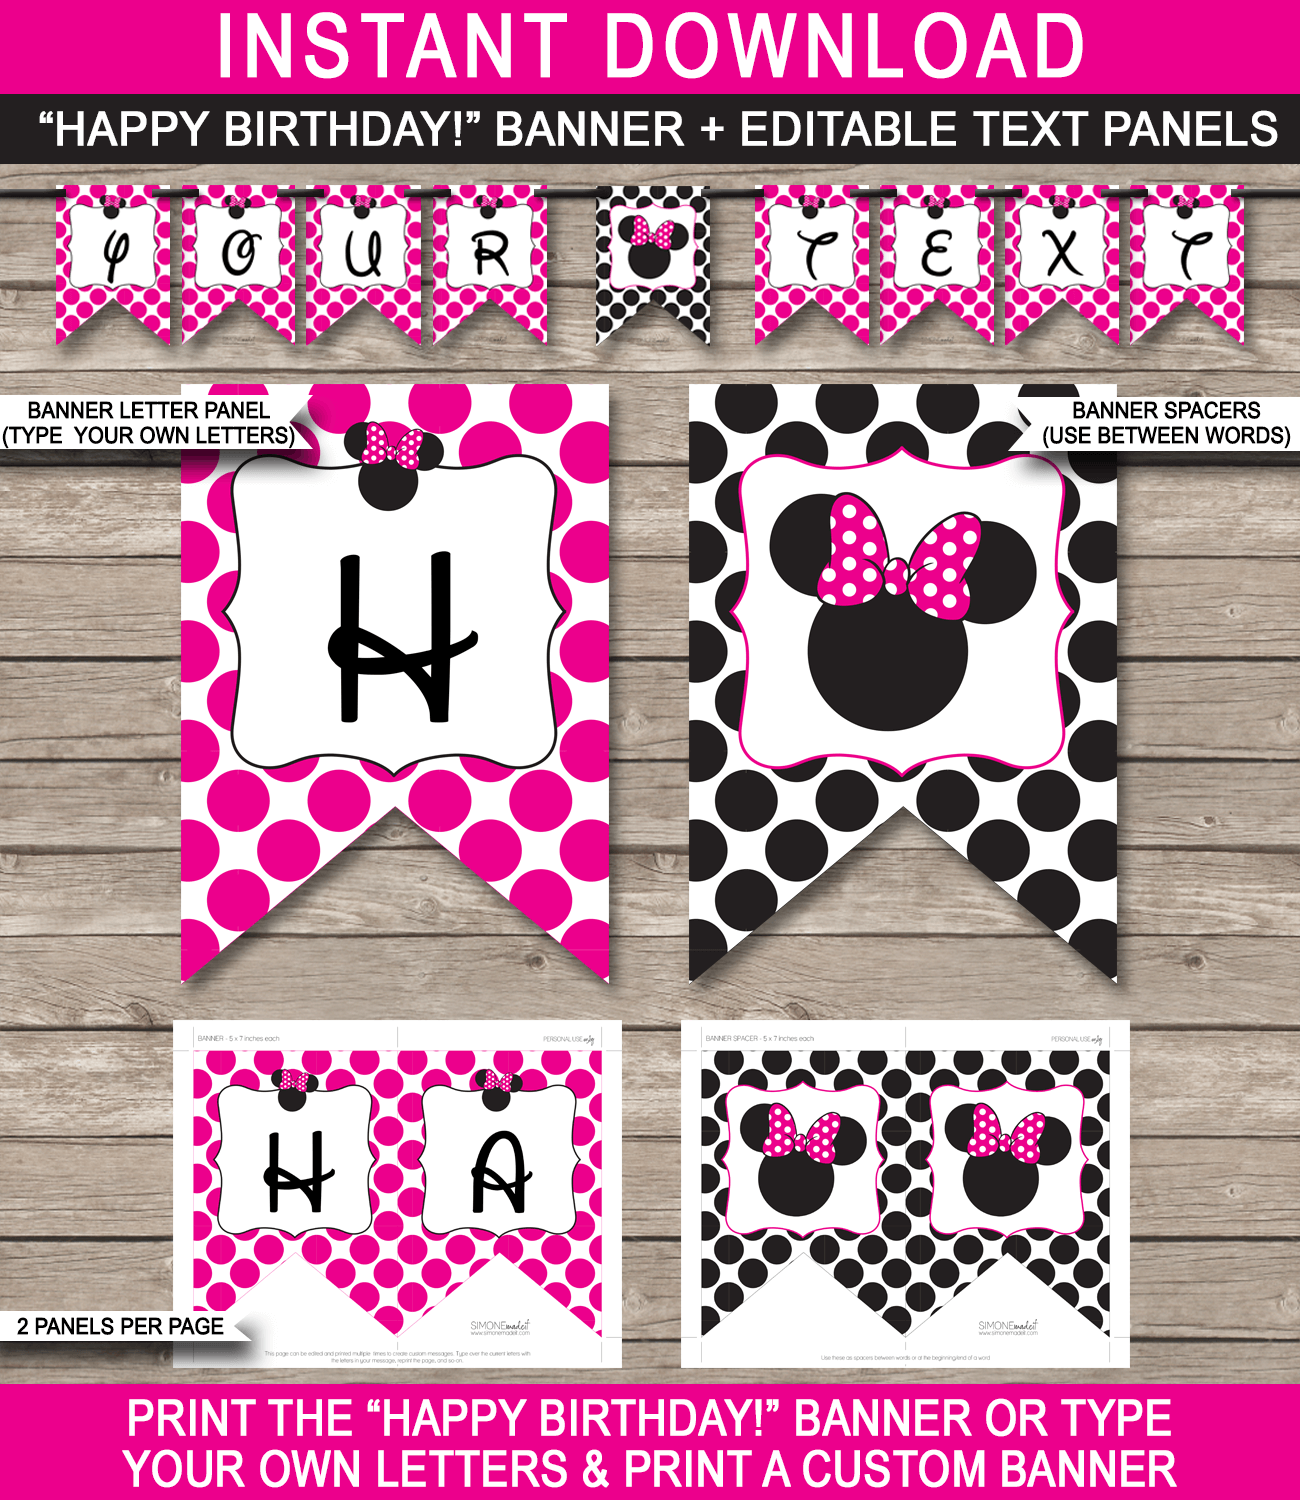 Minnie Mouse Party Banner Template - Pink - Minnie Mouse Bunting - Happy Birthday Banner - Birthday Party - Editable and Printable DIY Template - INSTANT DOWNLOAD $4.50 via simonemadeit.com